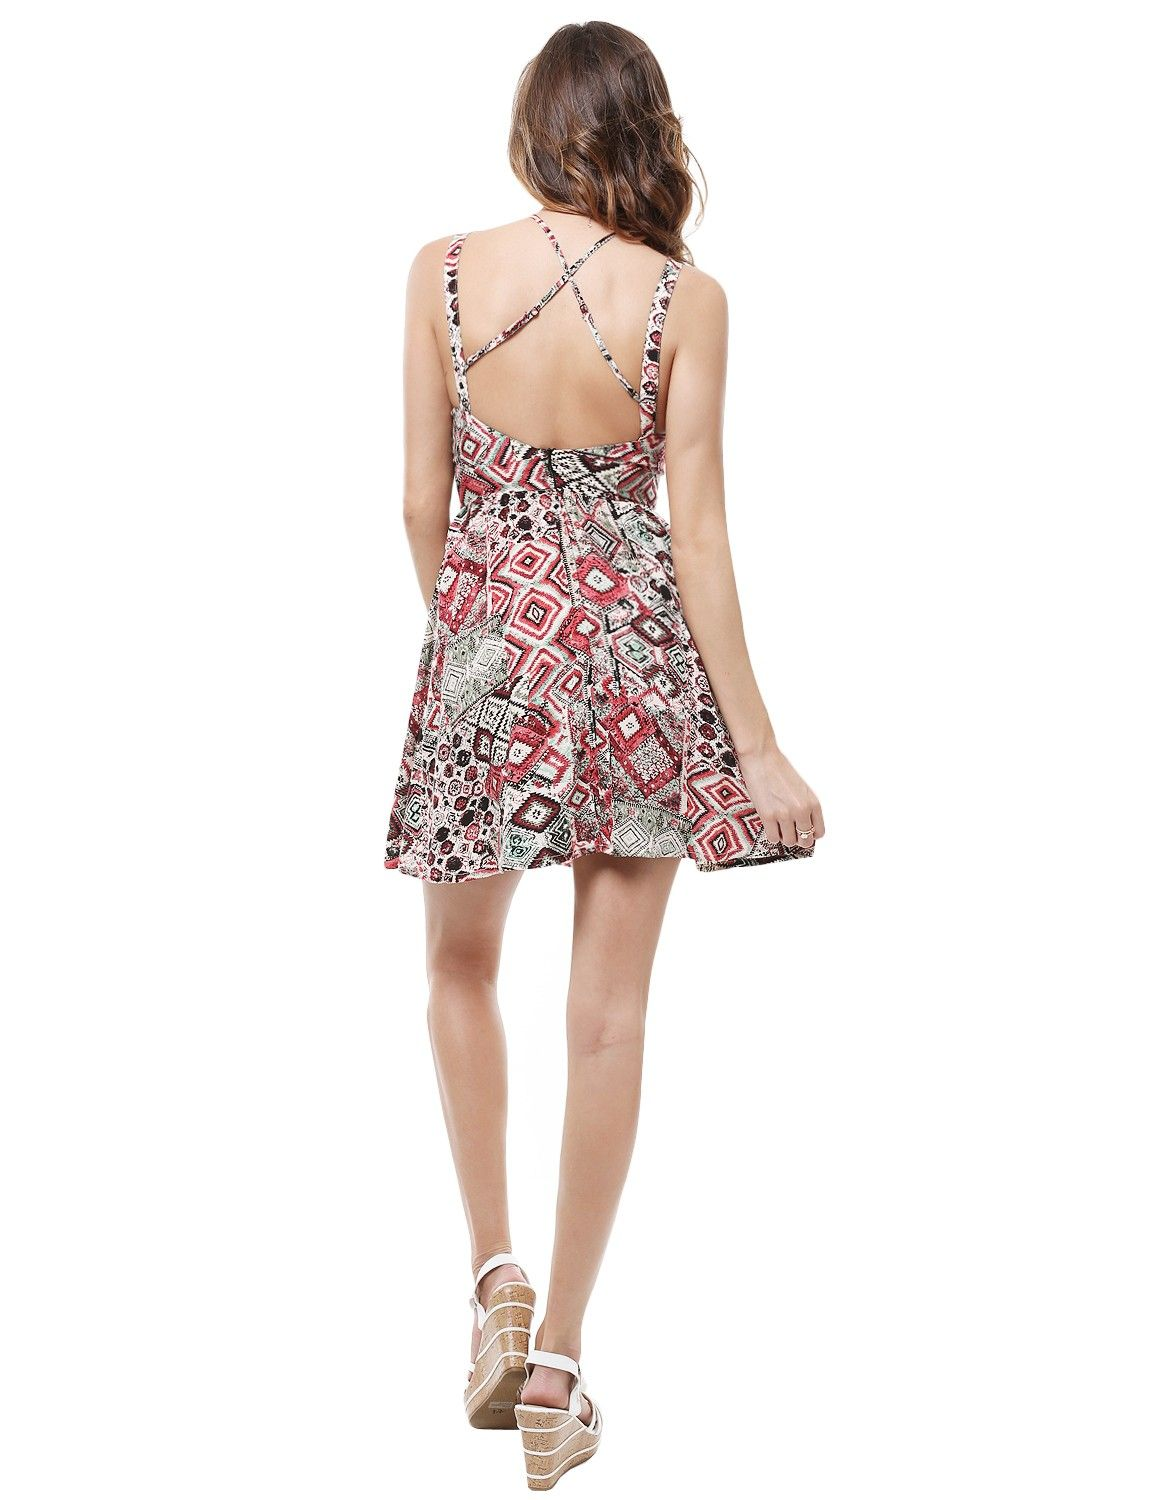 Printed Shift Mini Dress With Padded Cups #11foxy